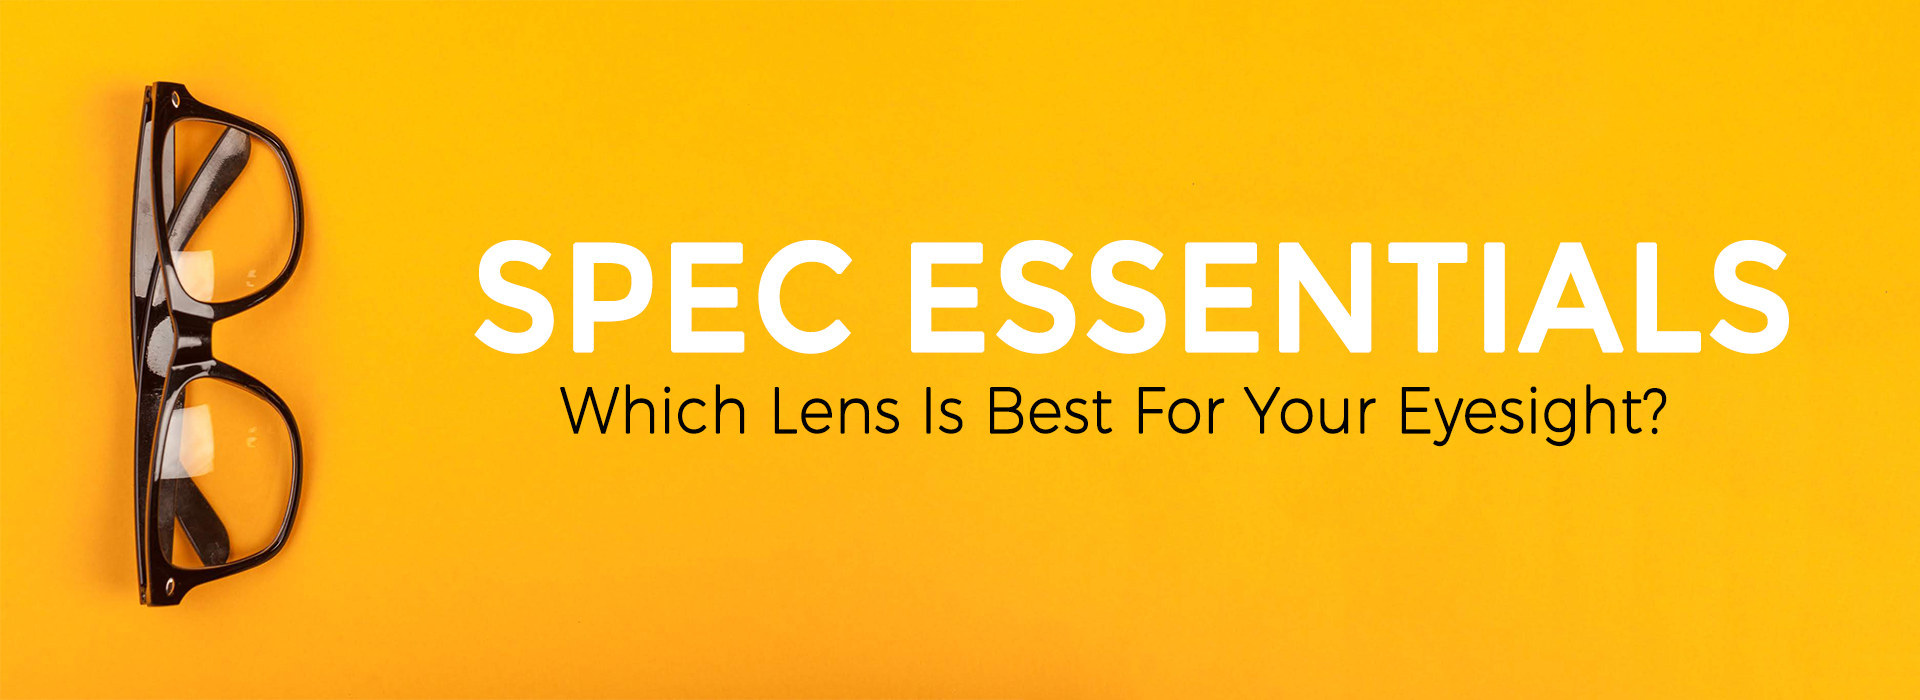 Spec Essentials: Which Lens Is Best For Your Eyesight?